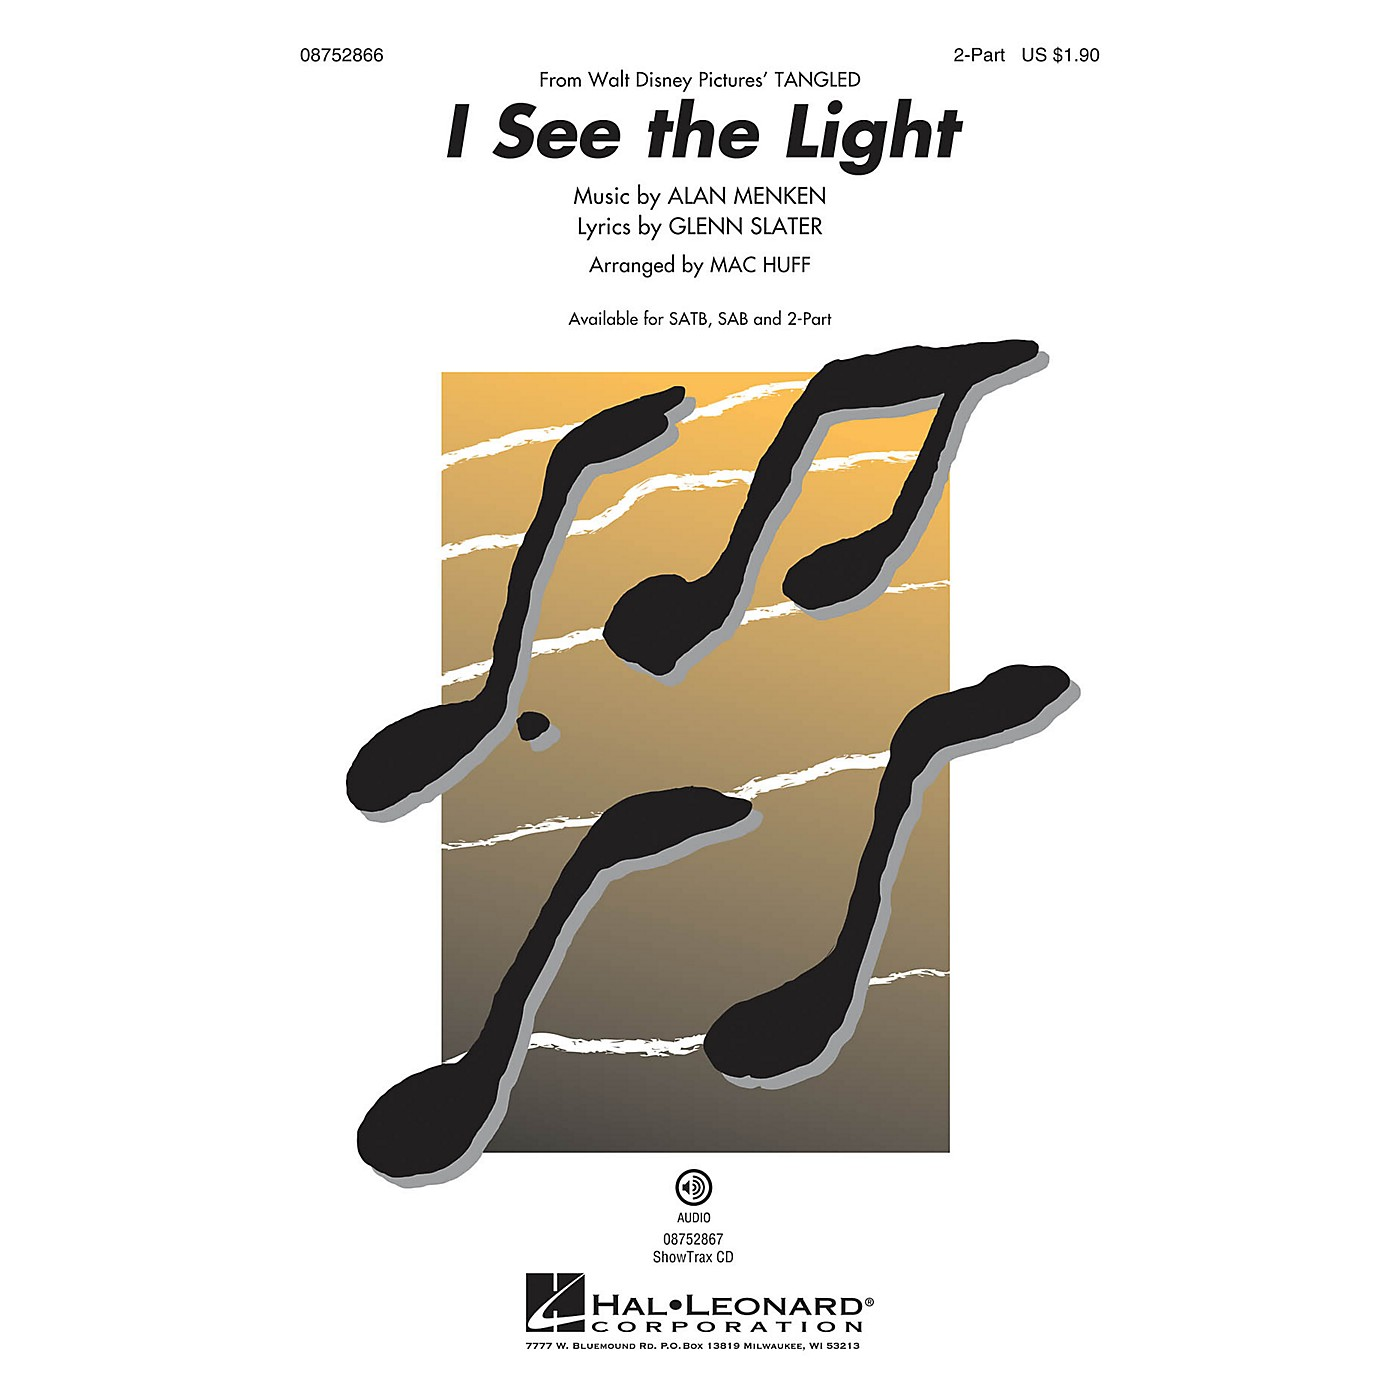 Hal Leonard I See the Light (from Walt Disney Pictures' Tangled) 2-Part arranged by Mac Huff thumbnail